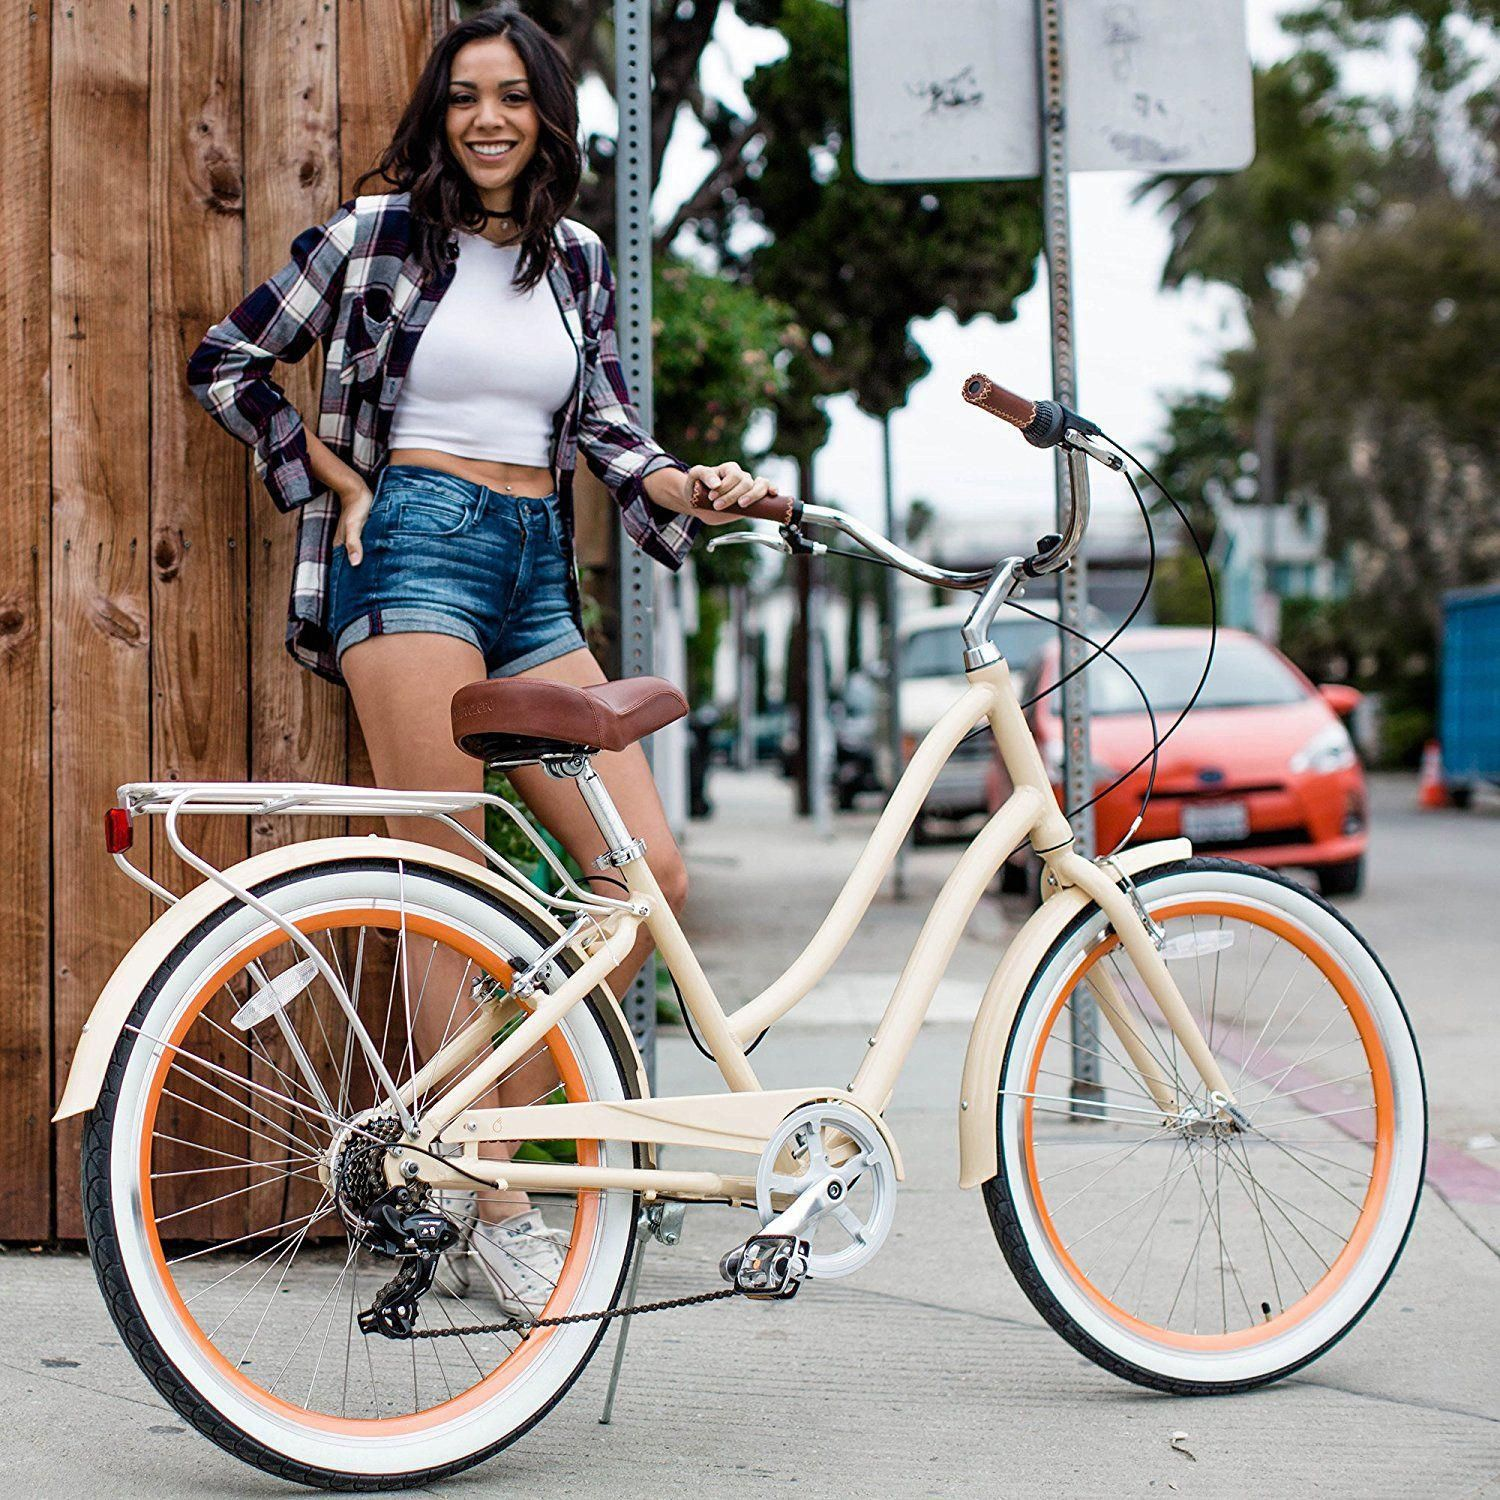 The 10 Best Hybrid Bikes For Women To Buy In 2020 In 2020 Hybrid